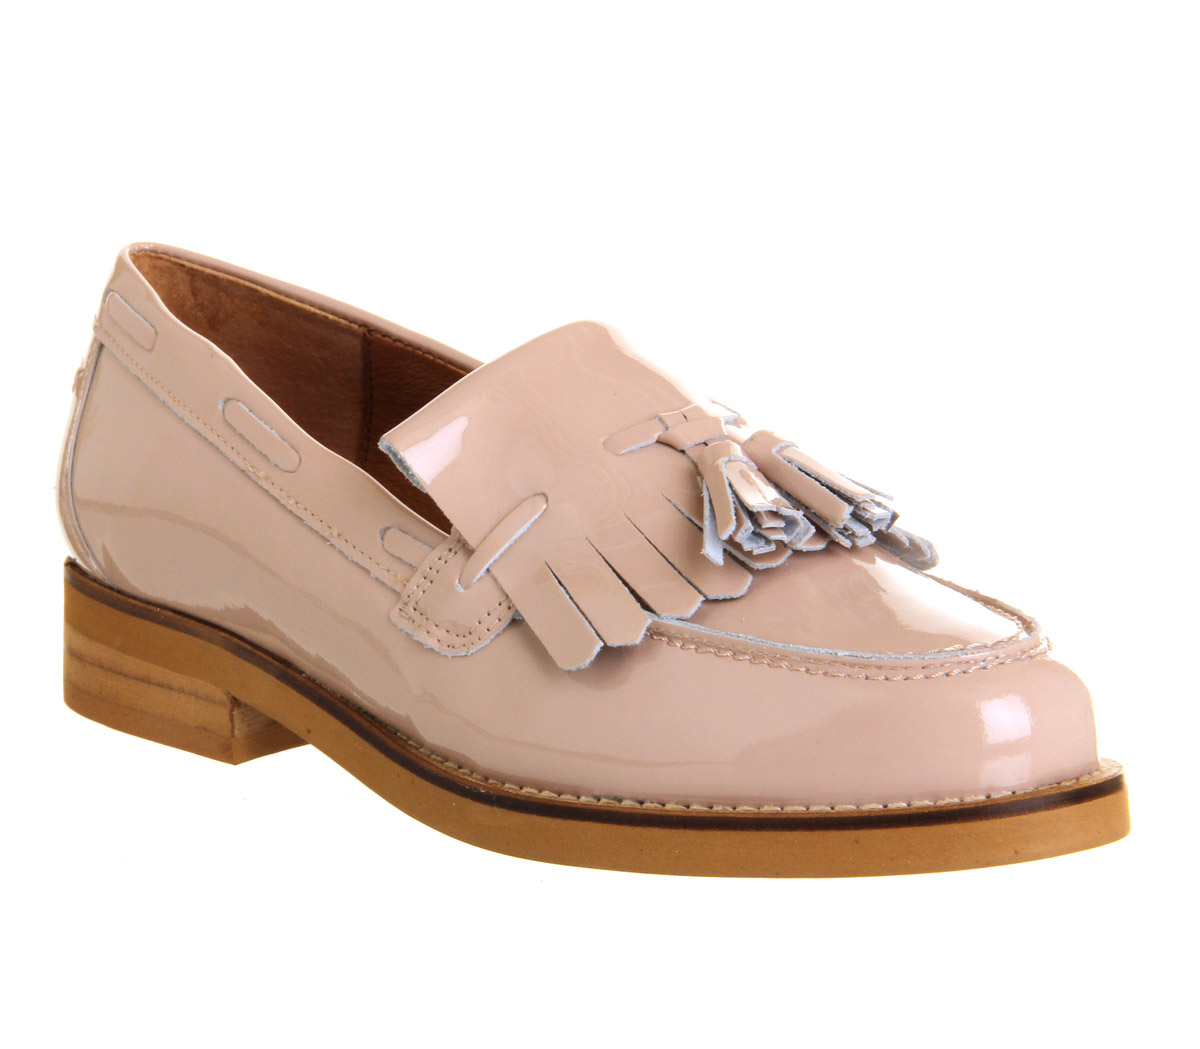 Nude Leather Flat Shoes Womens